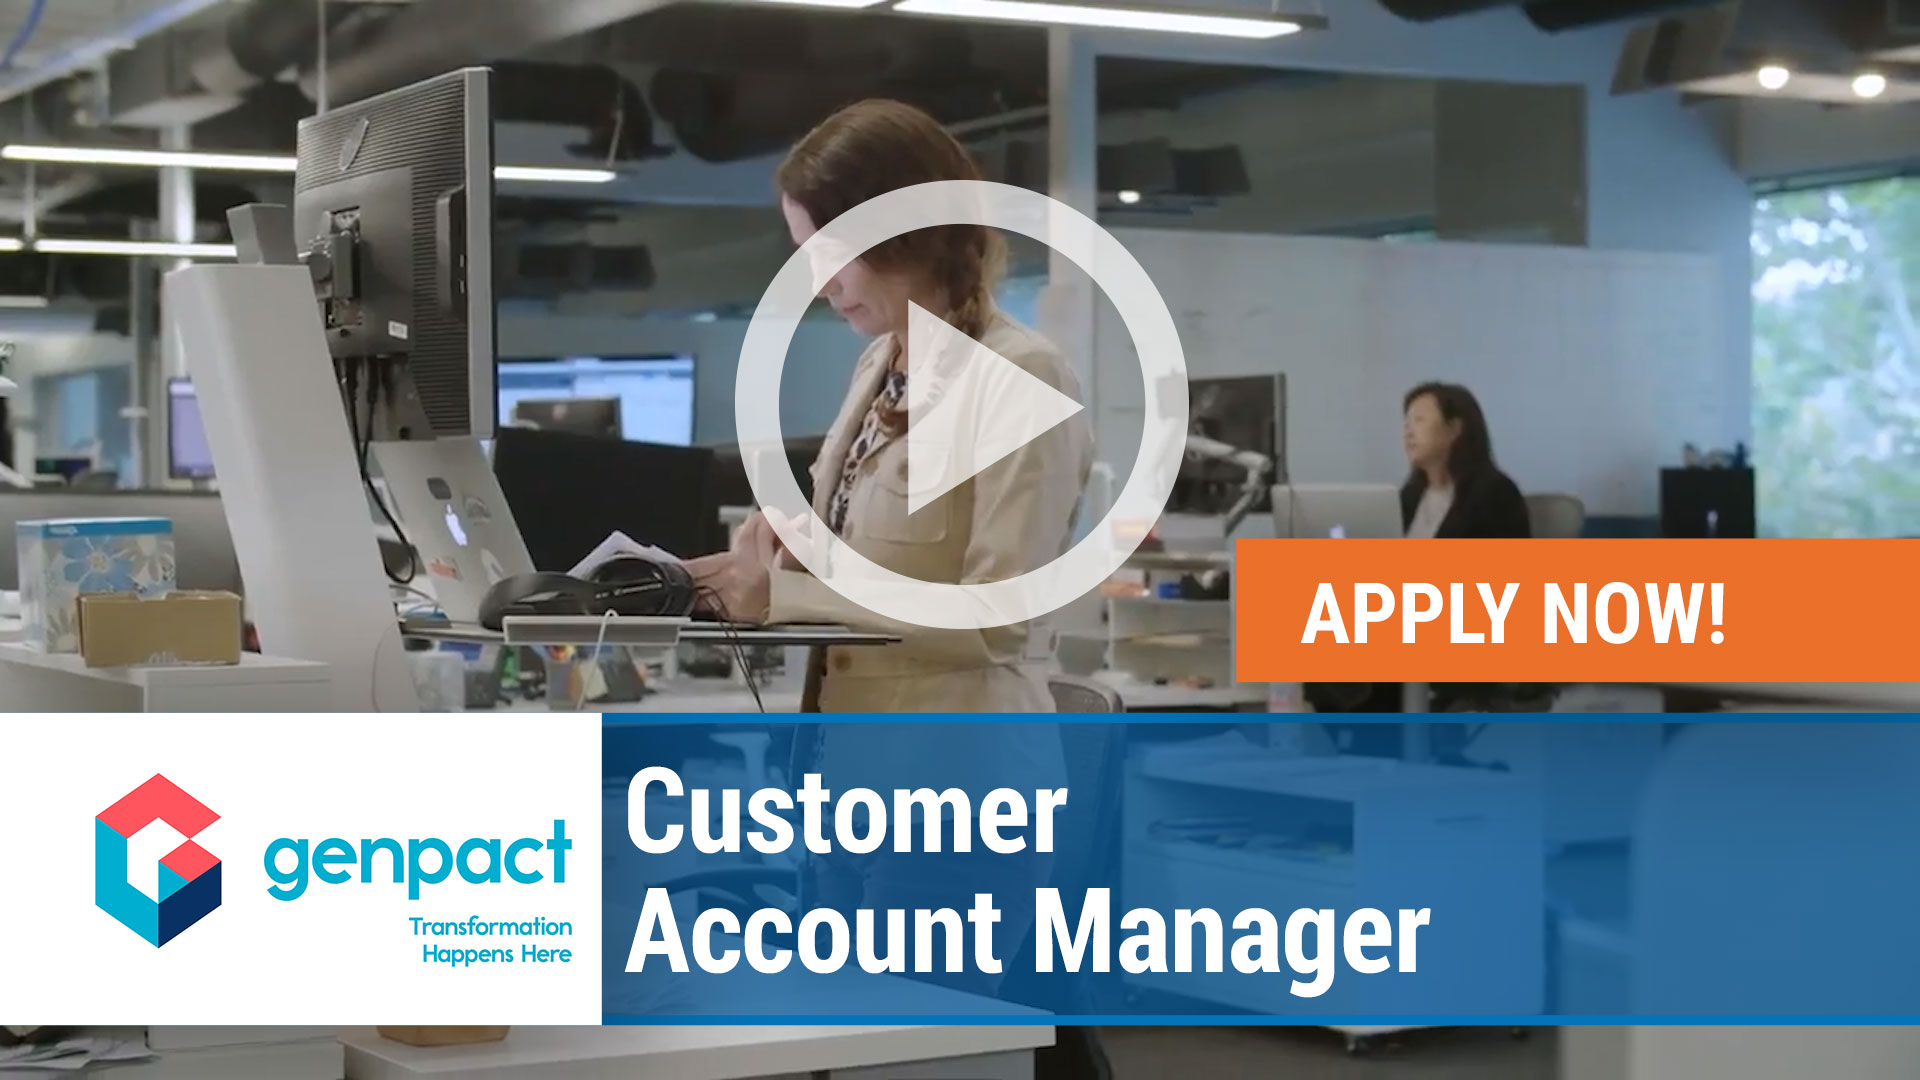 Watch our careers video for available job opening Customer Account Manager in Lynn, MA, USA